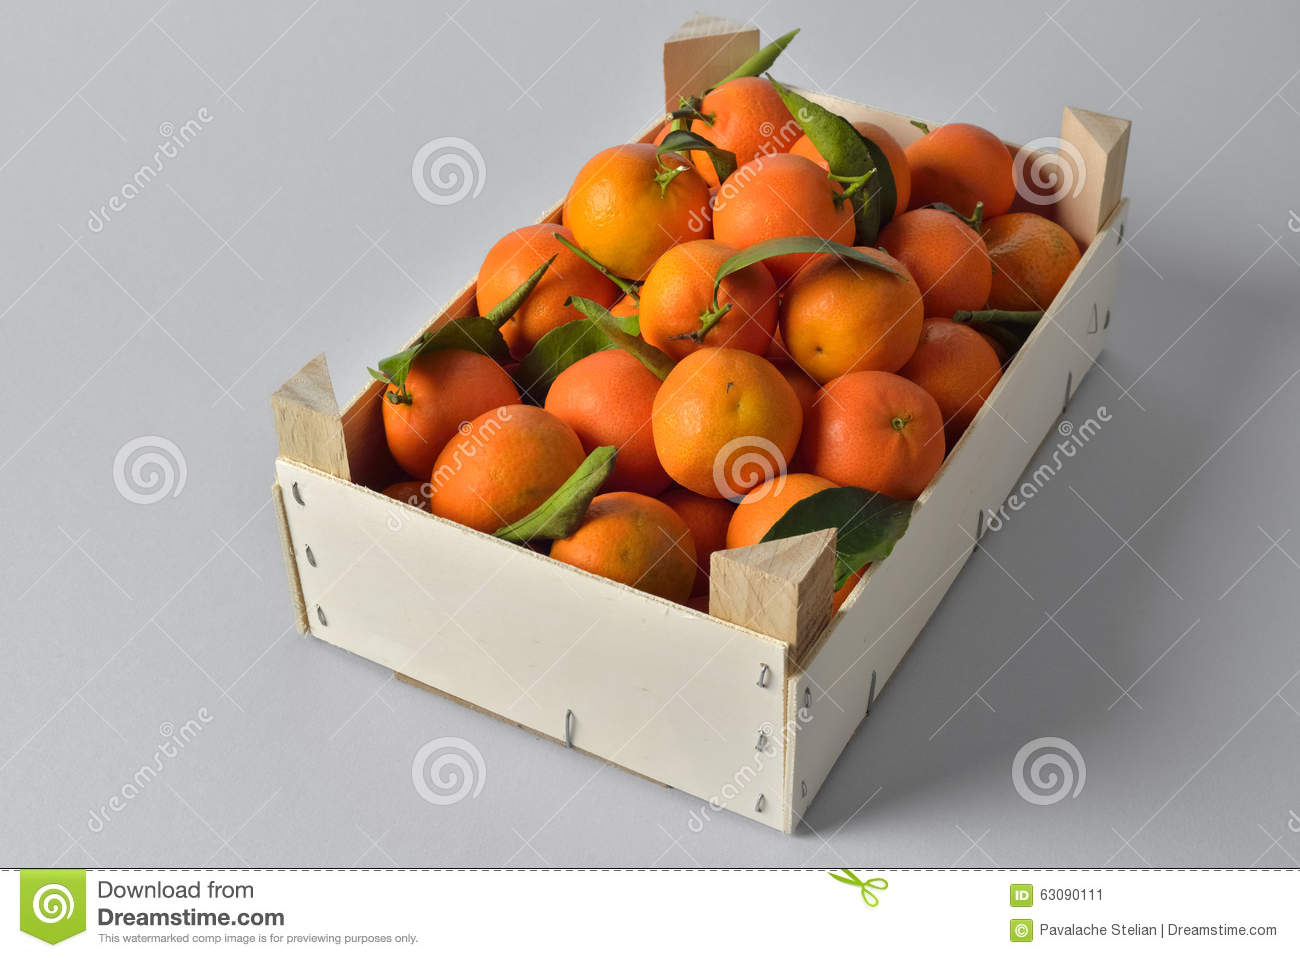 Download Caisse d'oranges image stock. Image du vert, sain, brillamment - 63090111